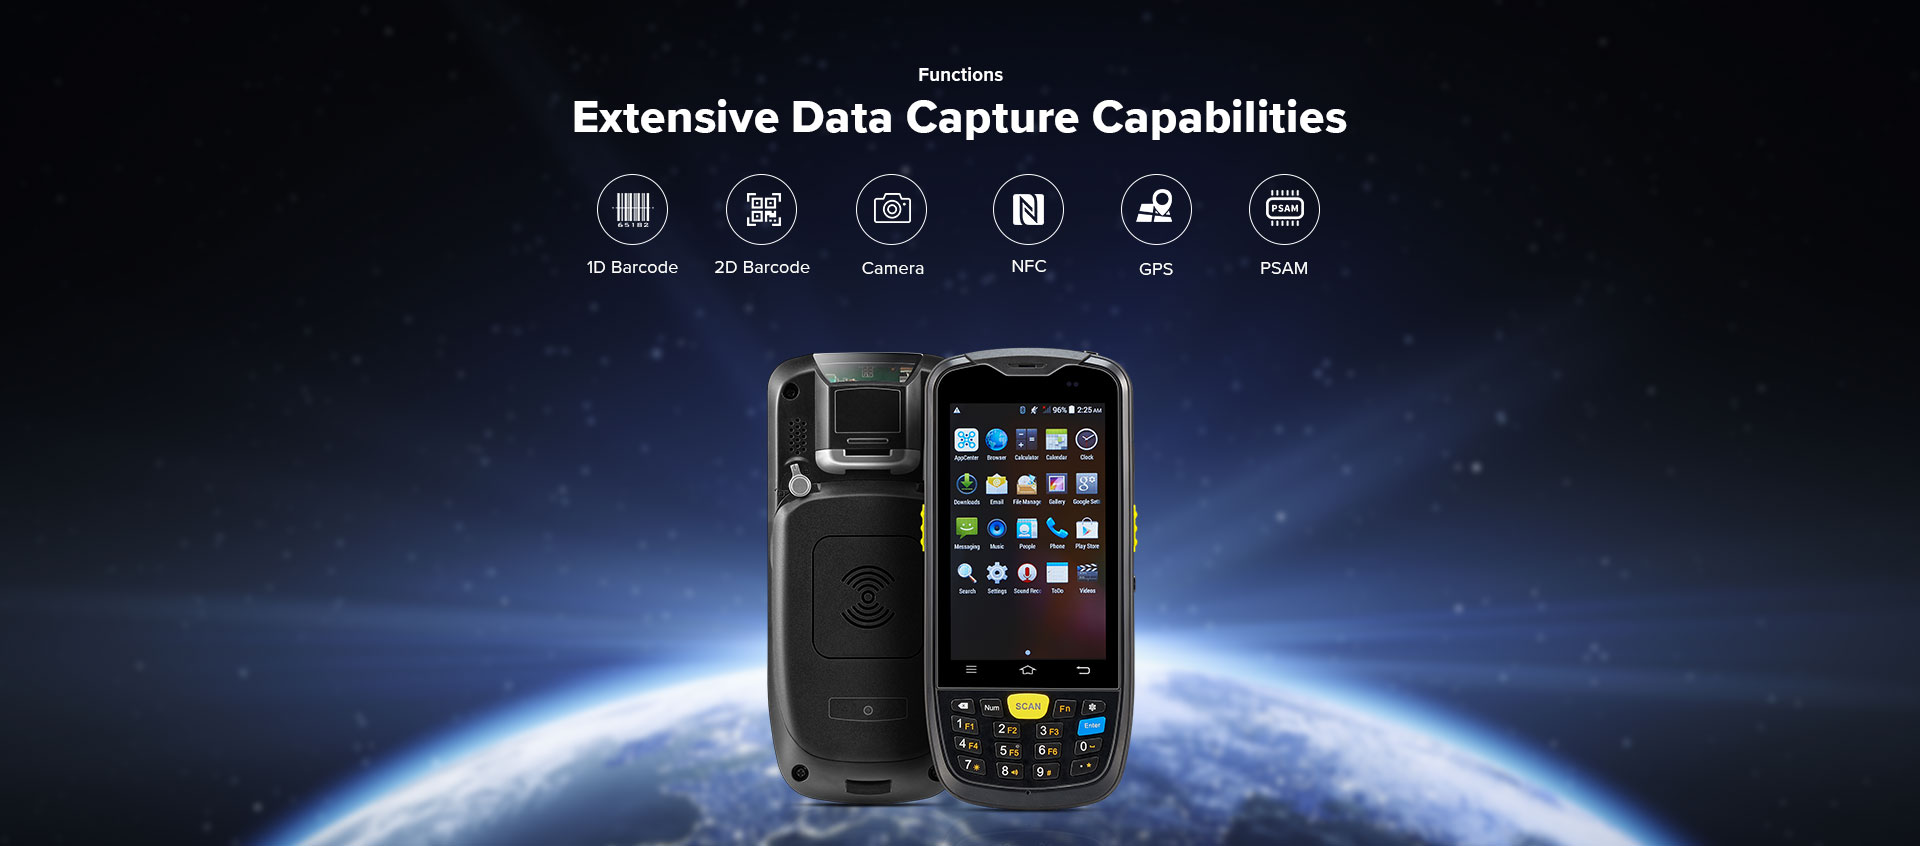 C6000 Rugged Handheld Computer Android - Data capture